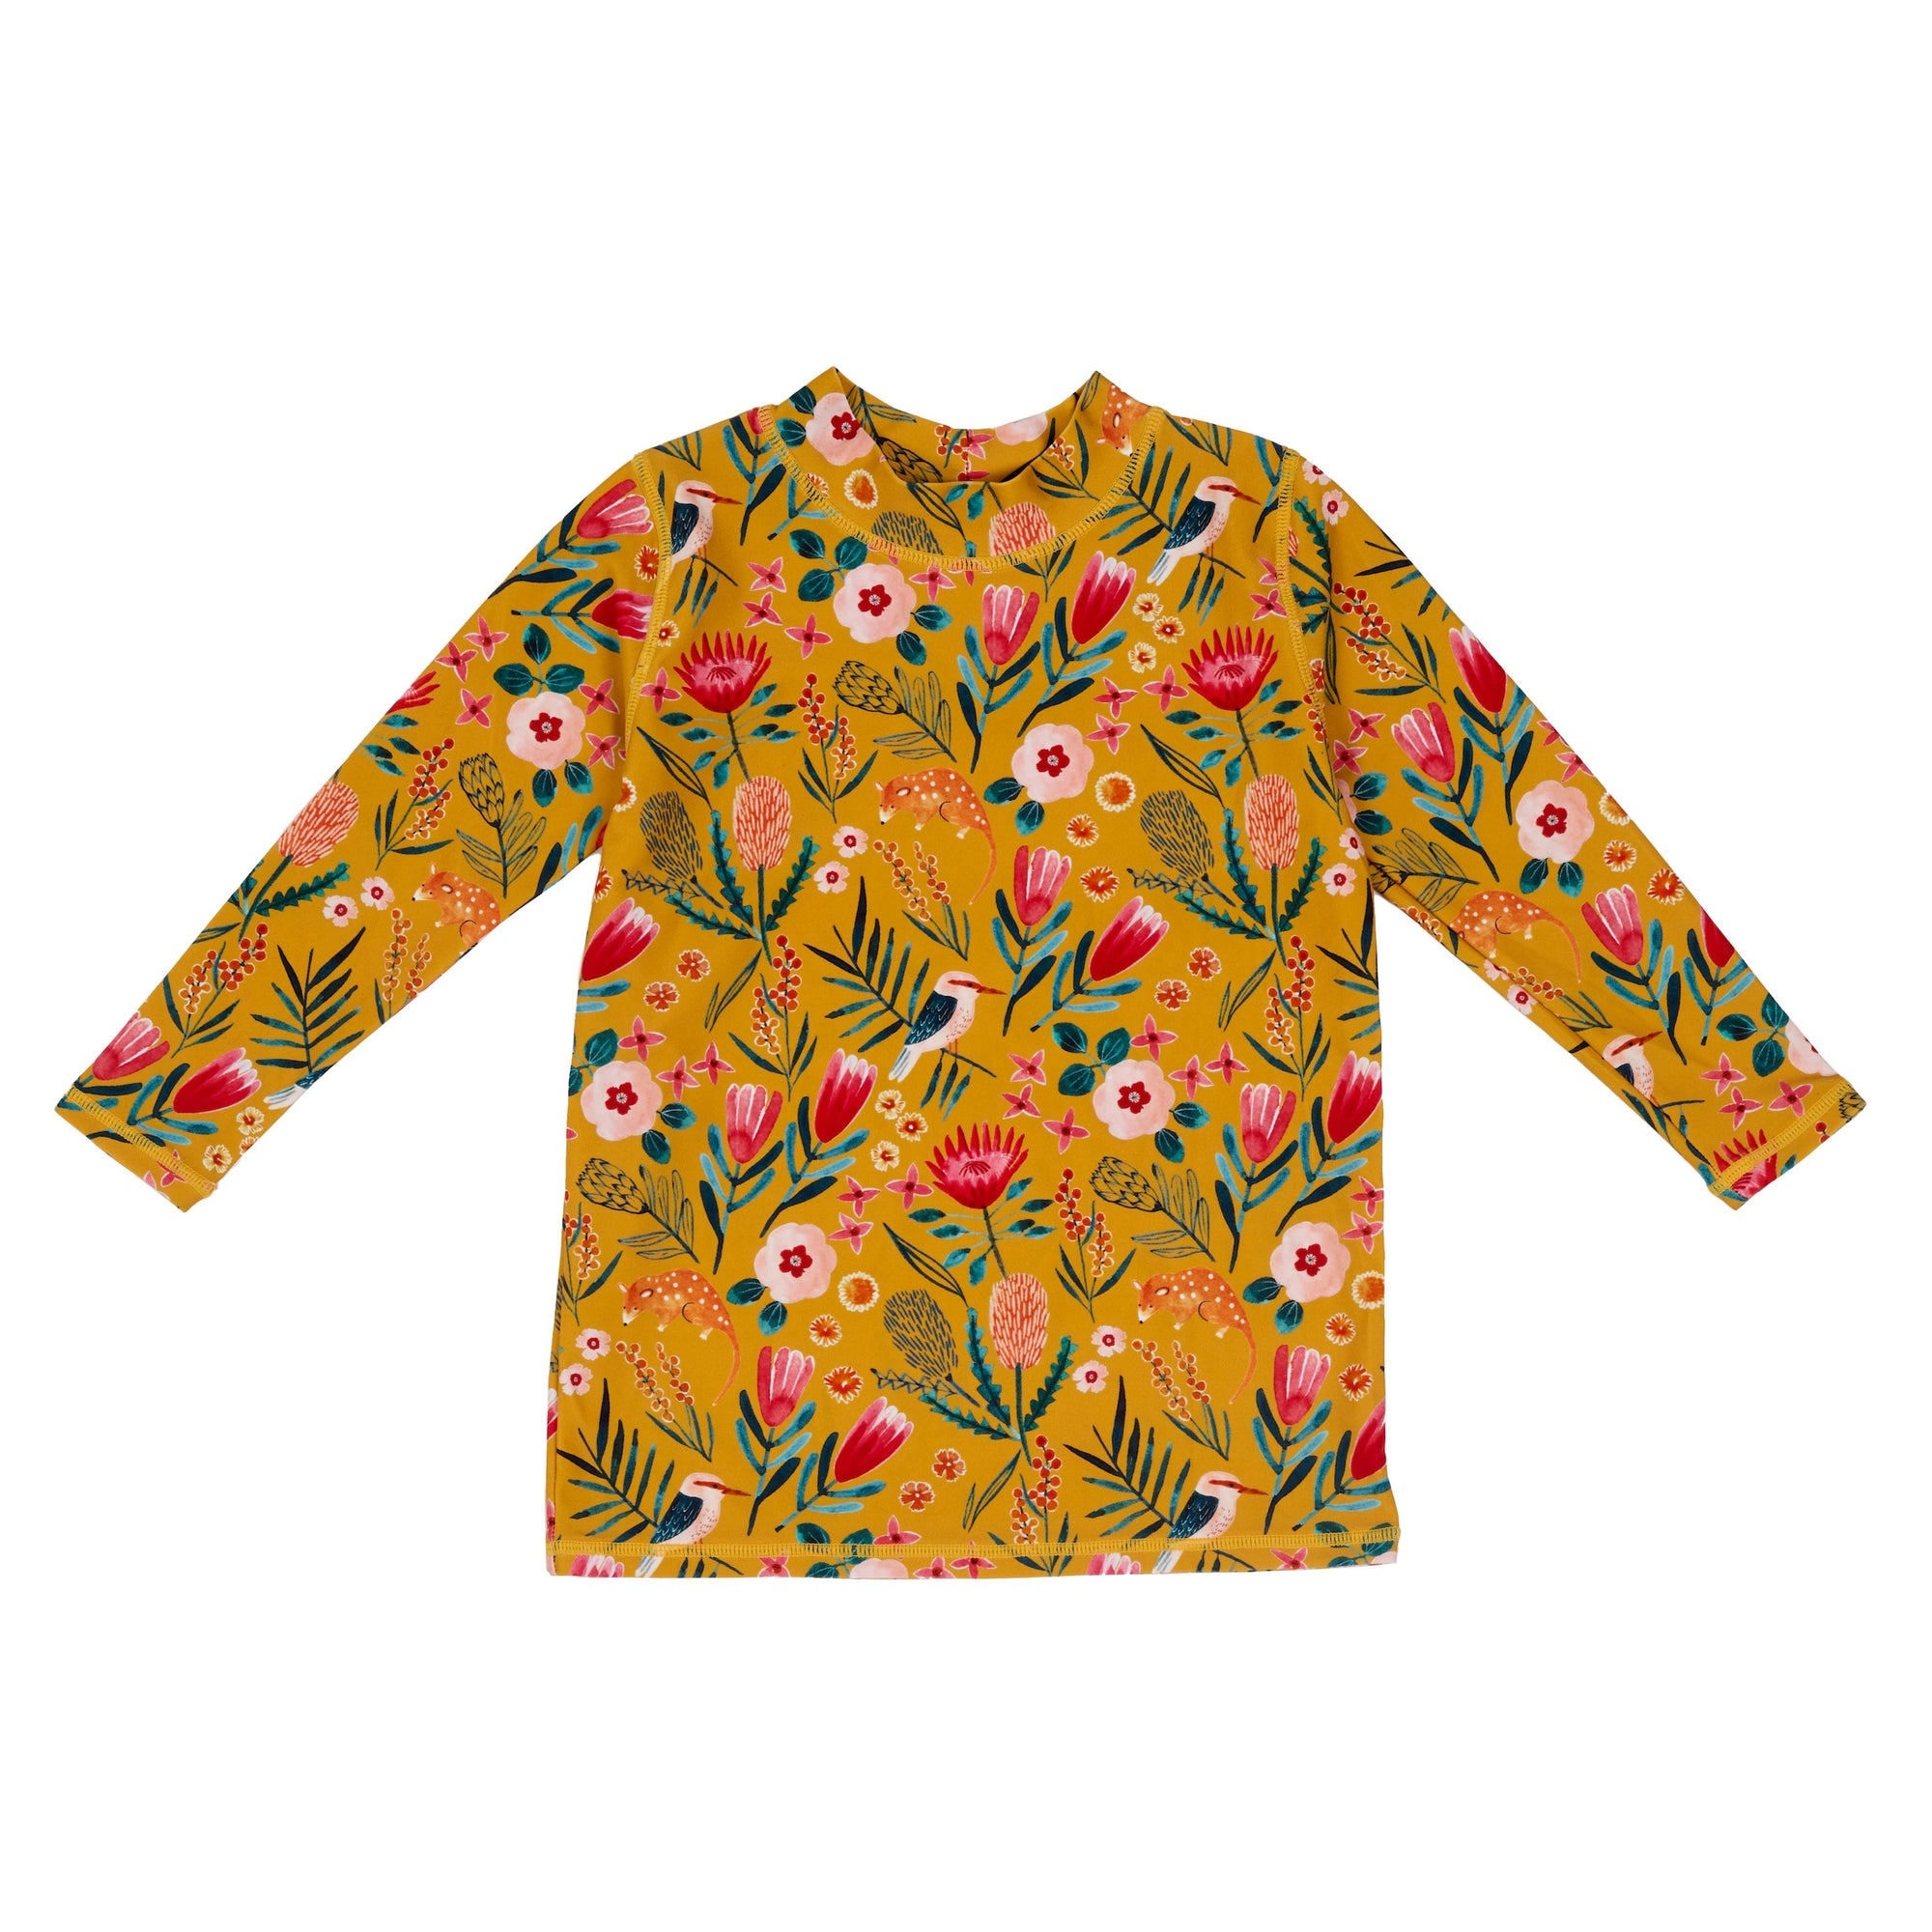 Native Garden Sun Protection Rash Vest